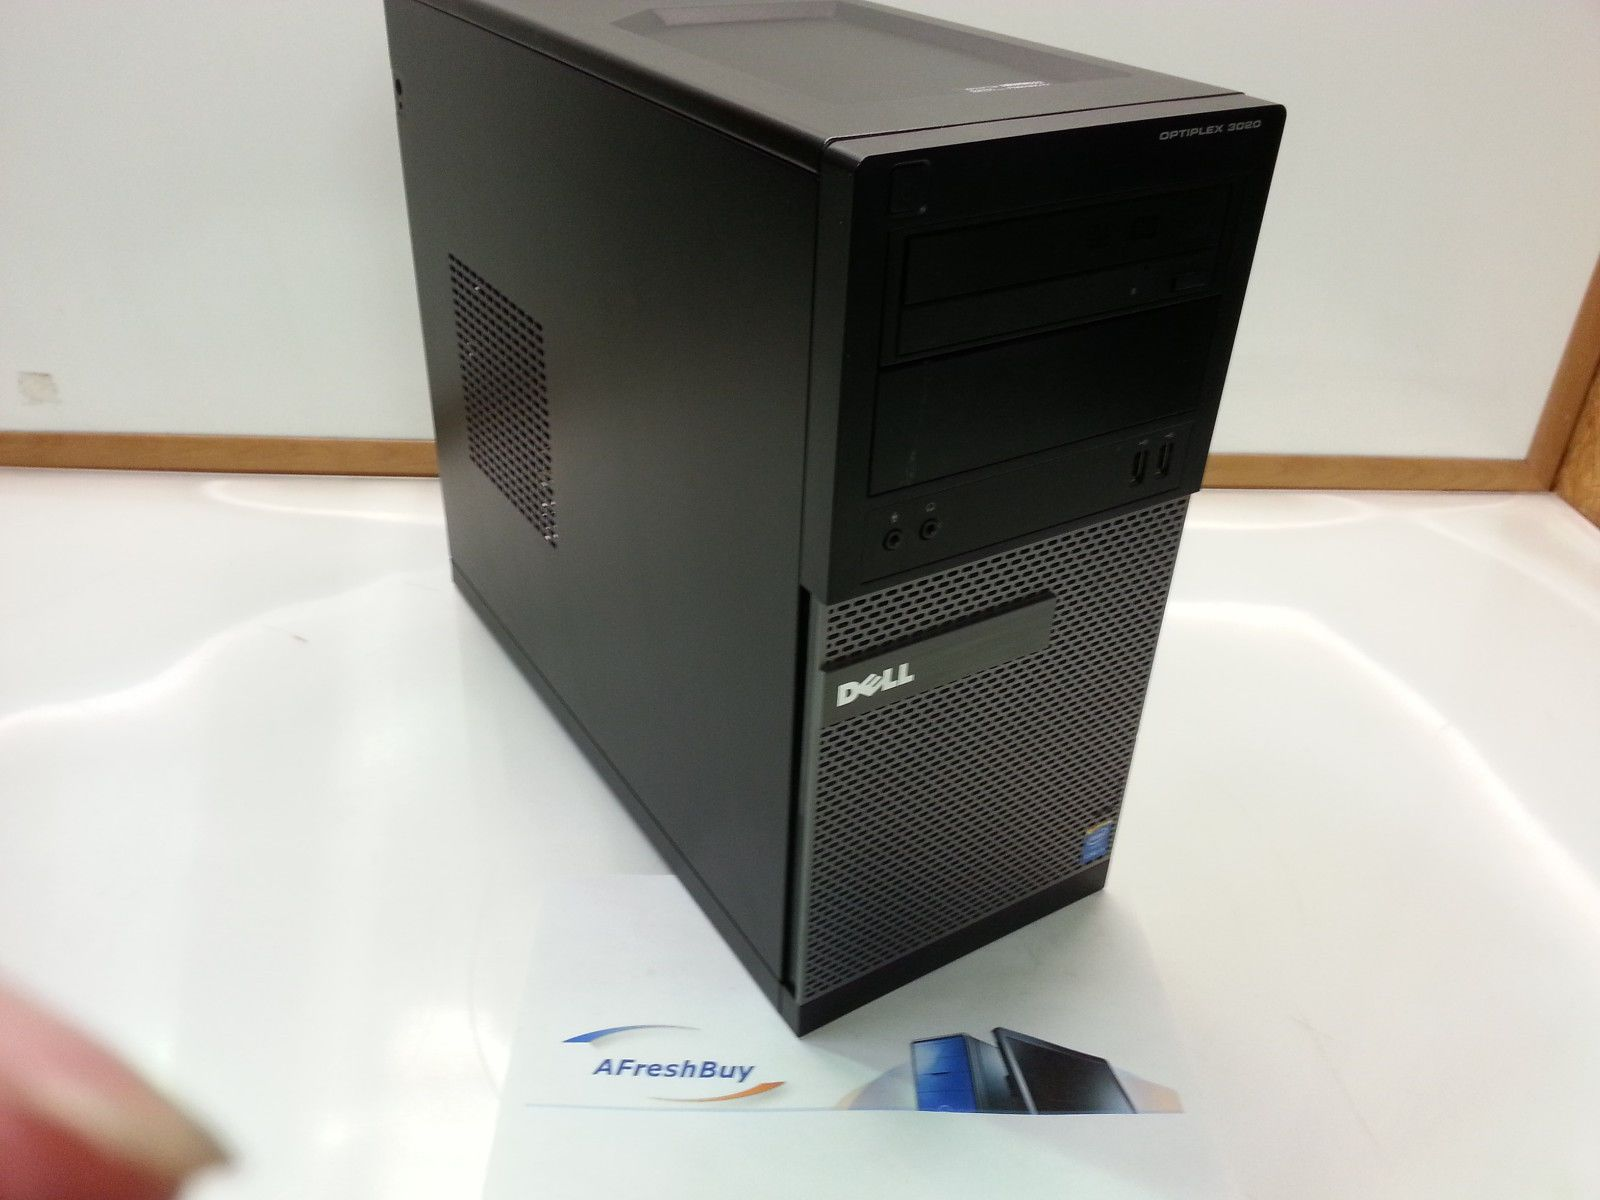 Dell Optiplex 3020MT - Intel Core i5-4590 3.60 GHz, 4GB DDR3, 500GB HDD, VGA Intel HD Graphics 4600